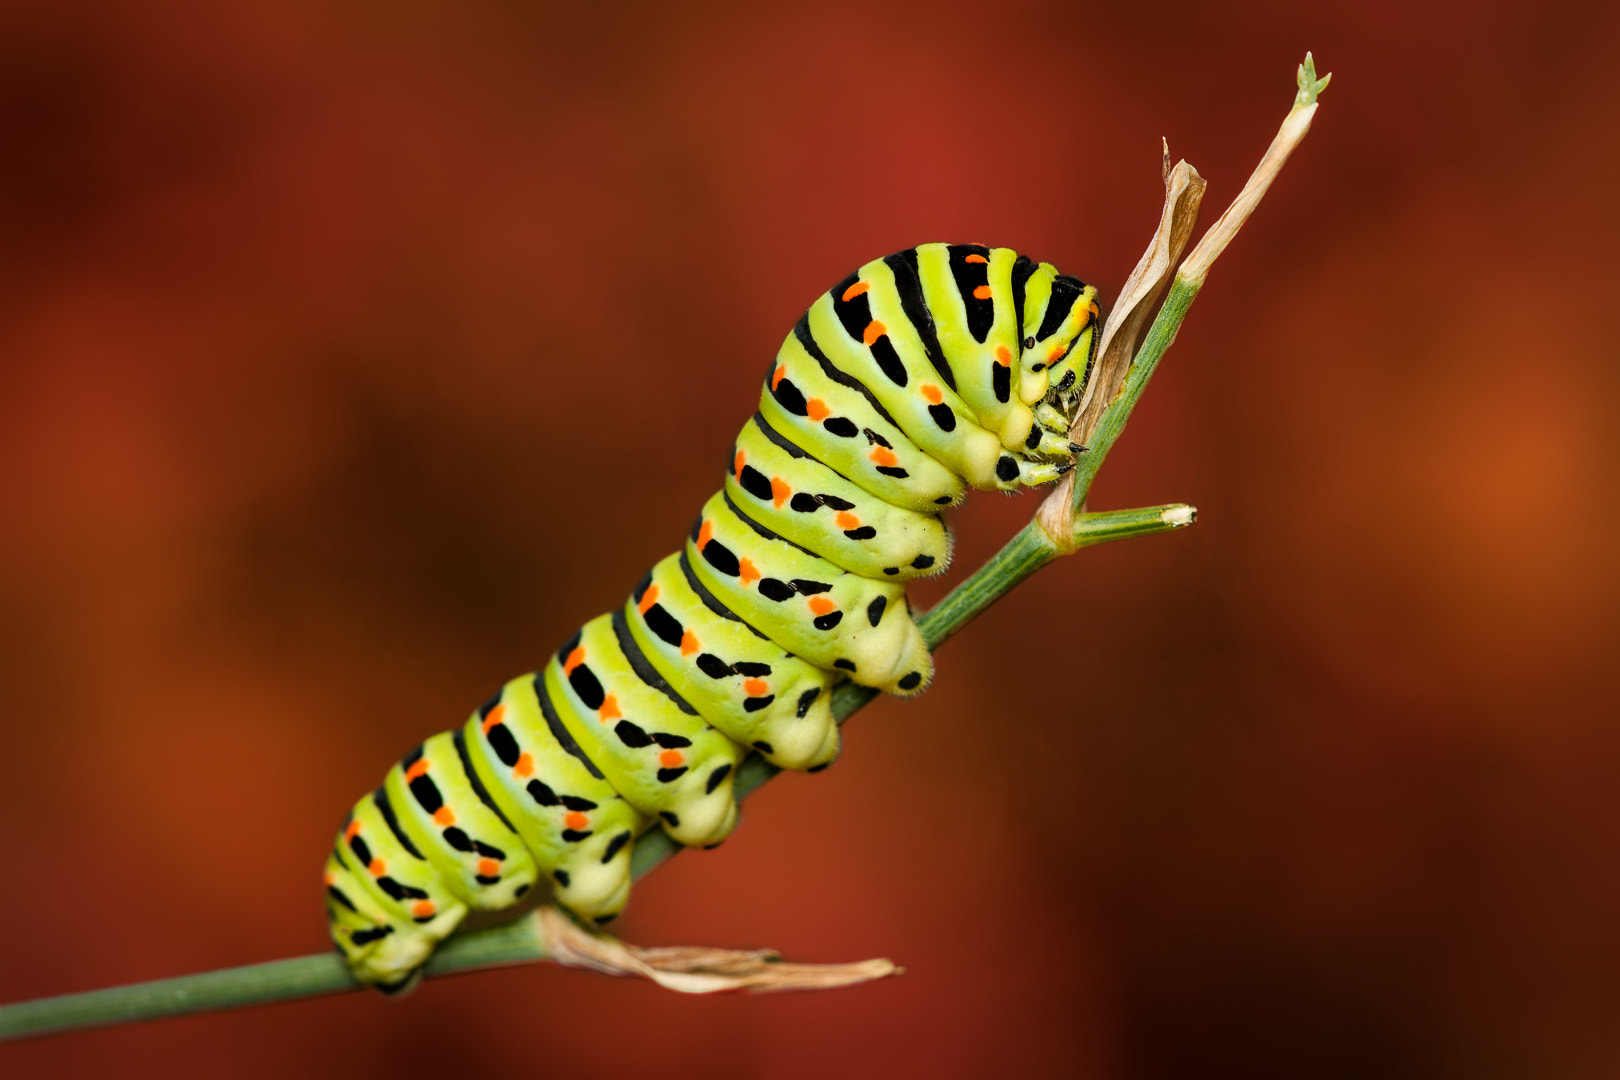 Photograph Macaon Caterpillar by Andres Gutierrez on 500px